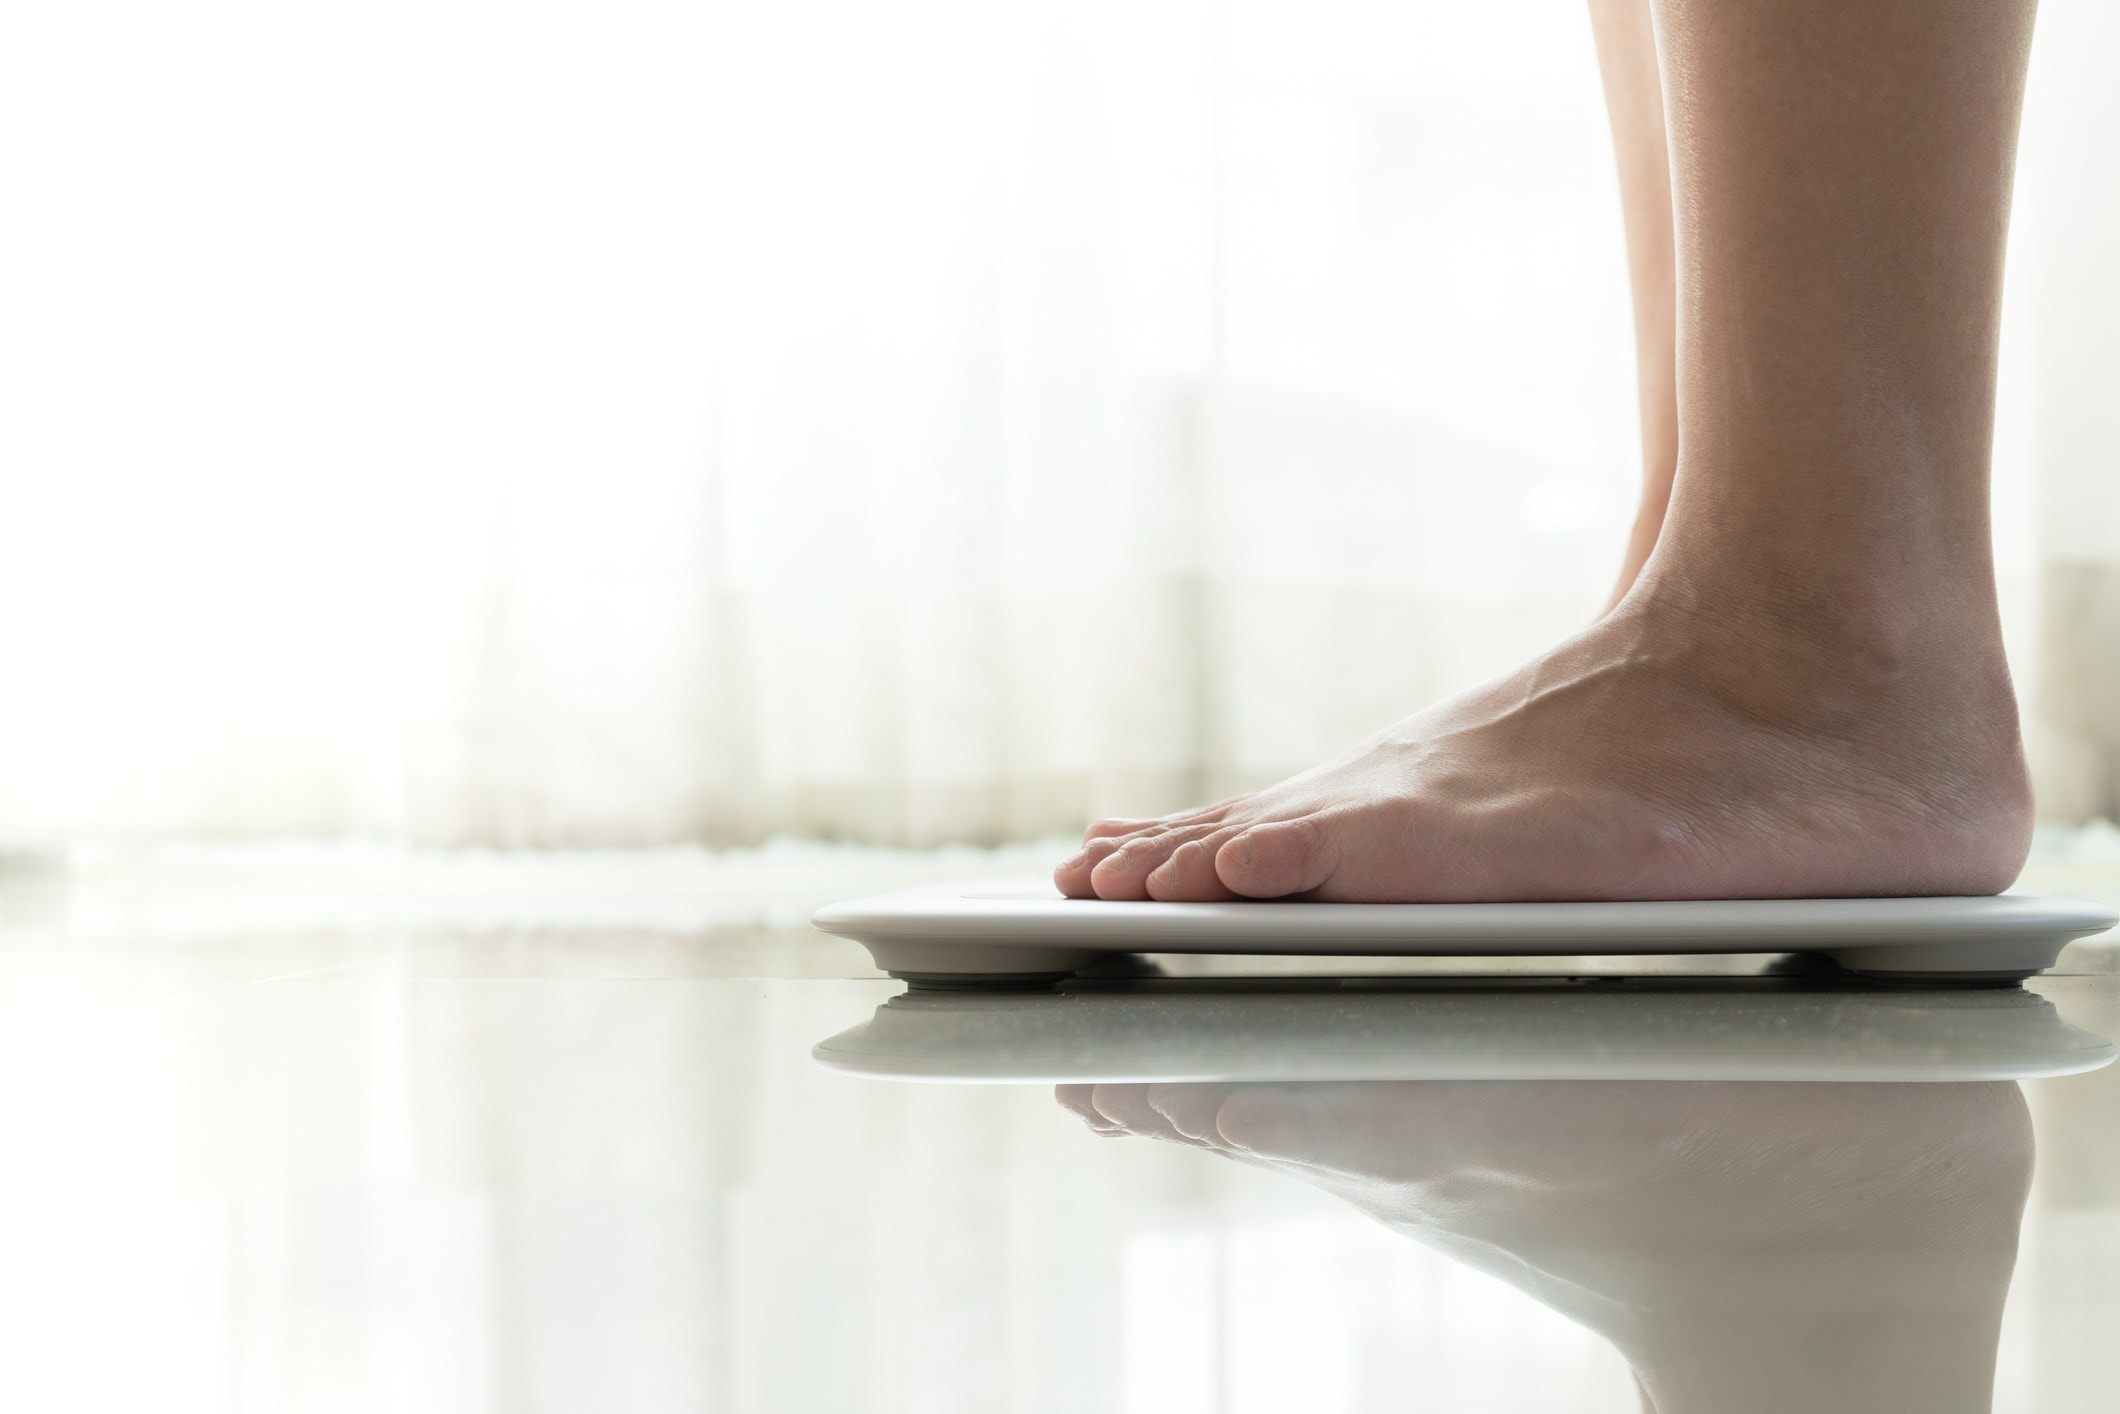 Feet on scales